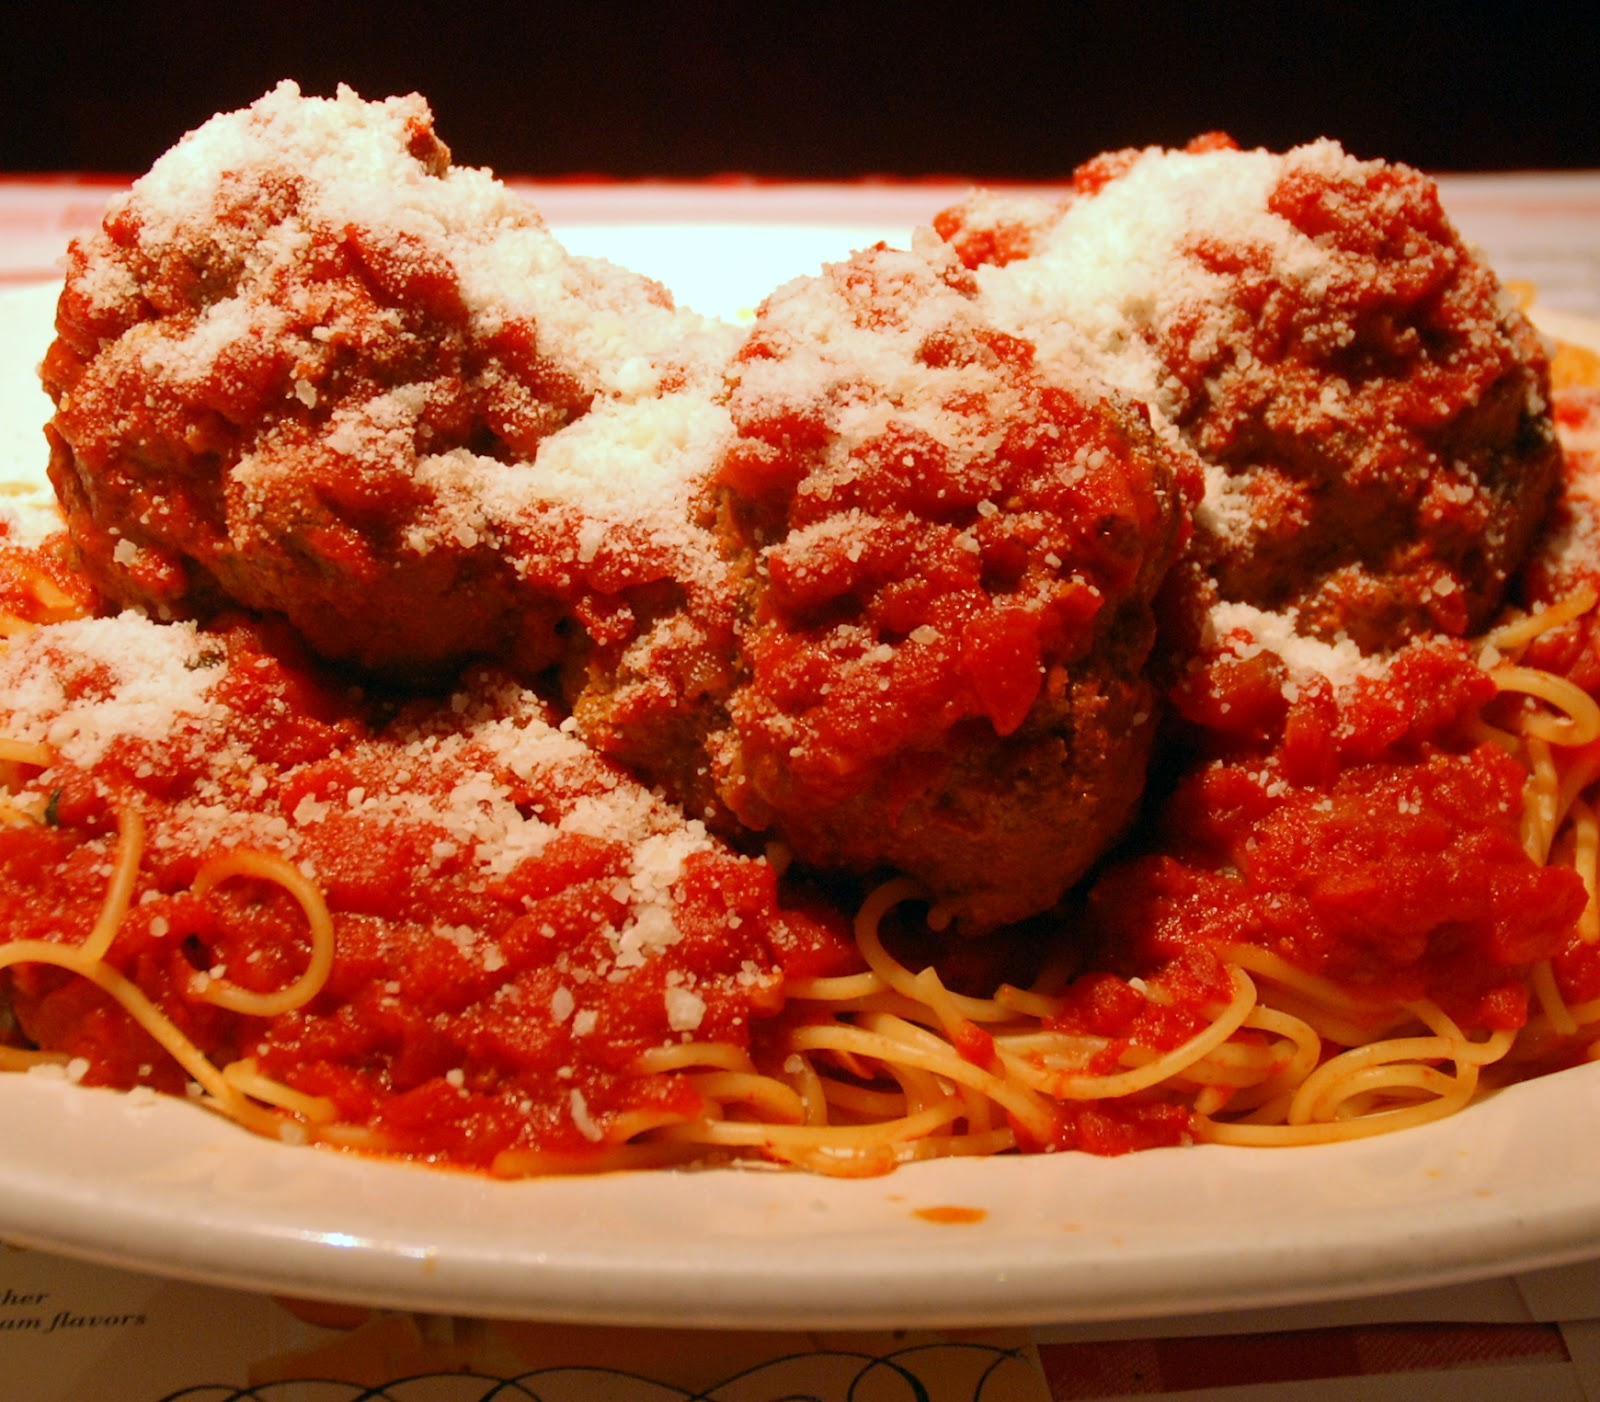 Man That Stuff Is Good!: Meatballs and Italian Sausage ...